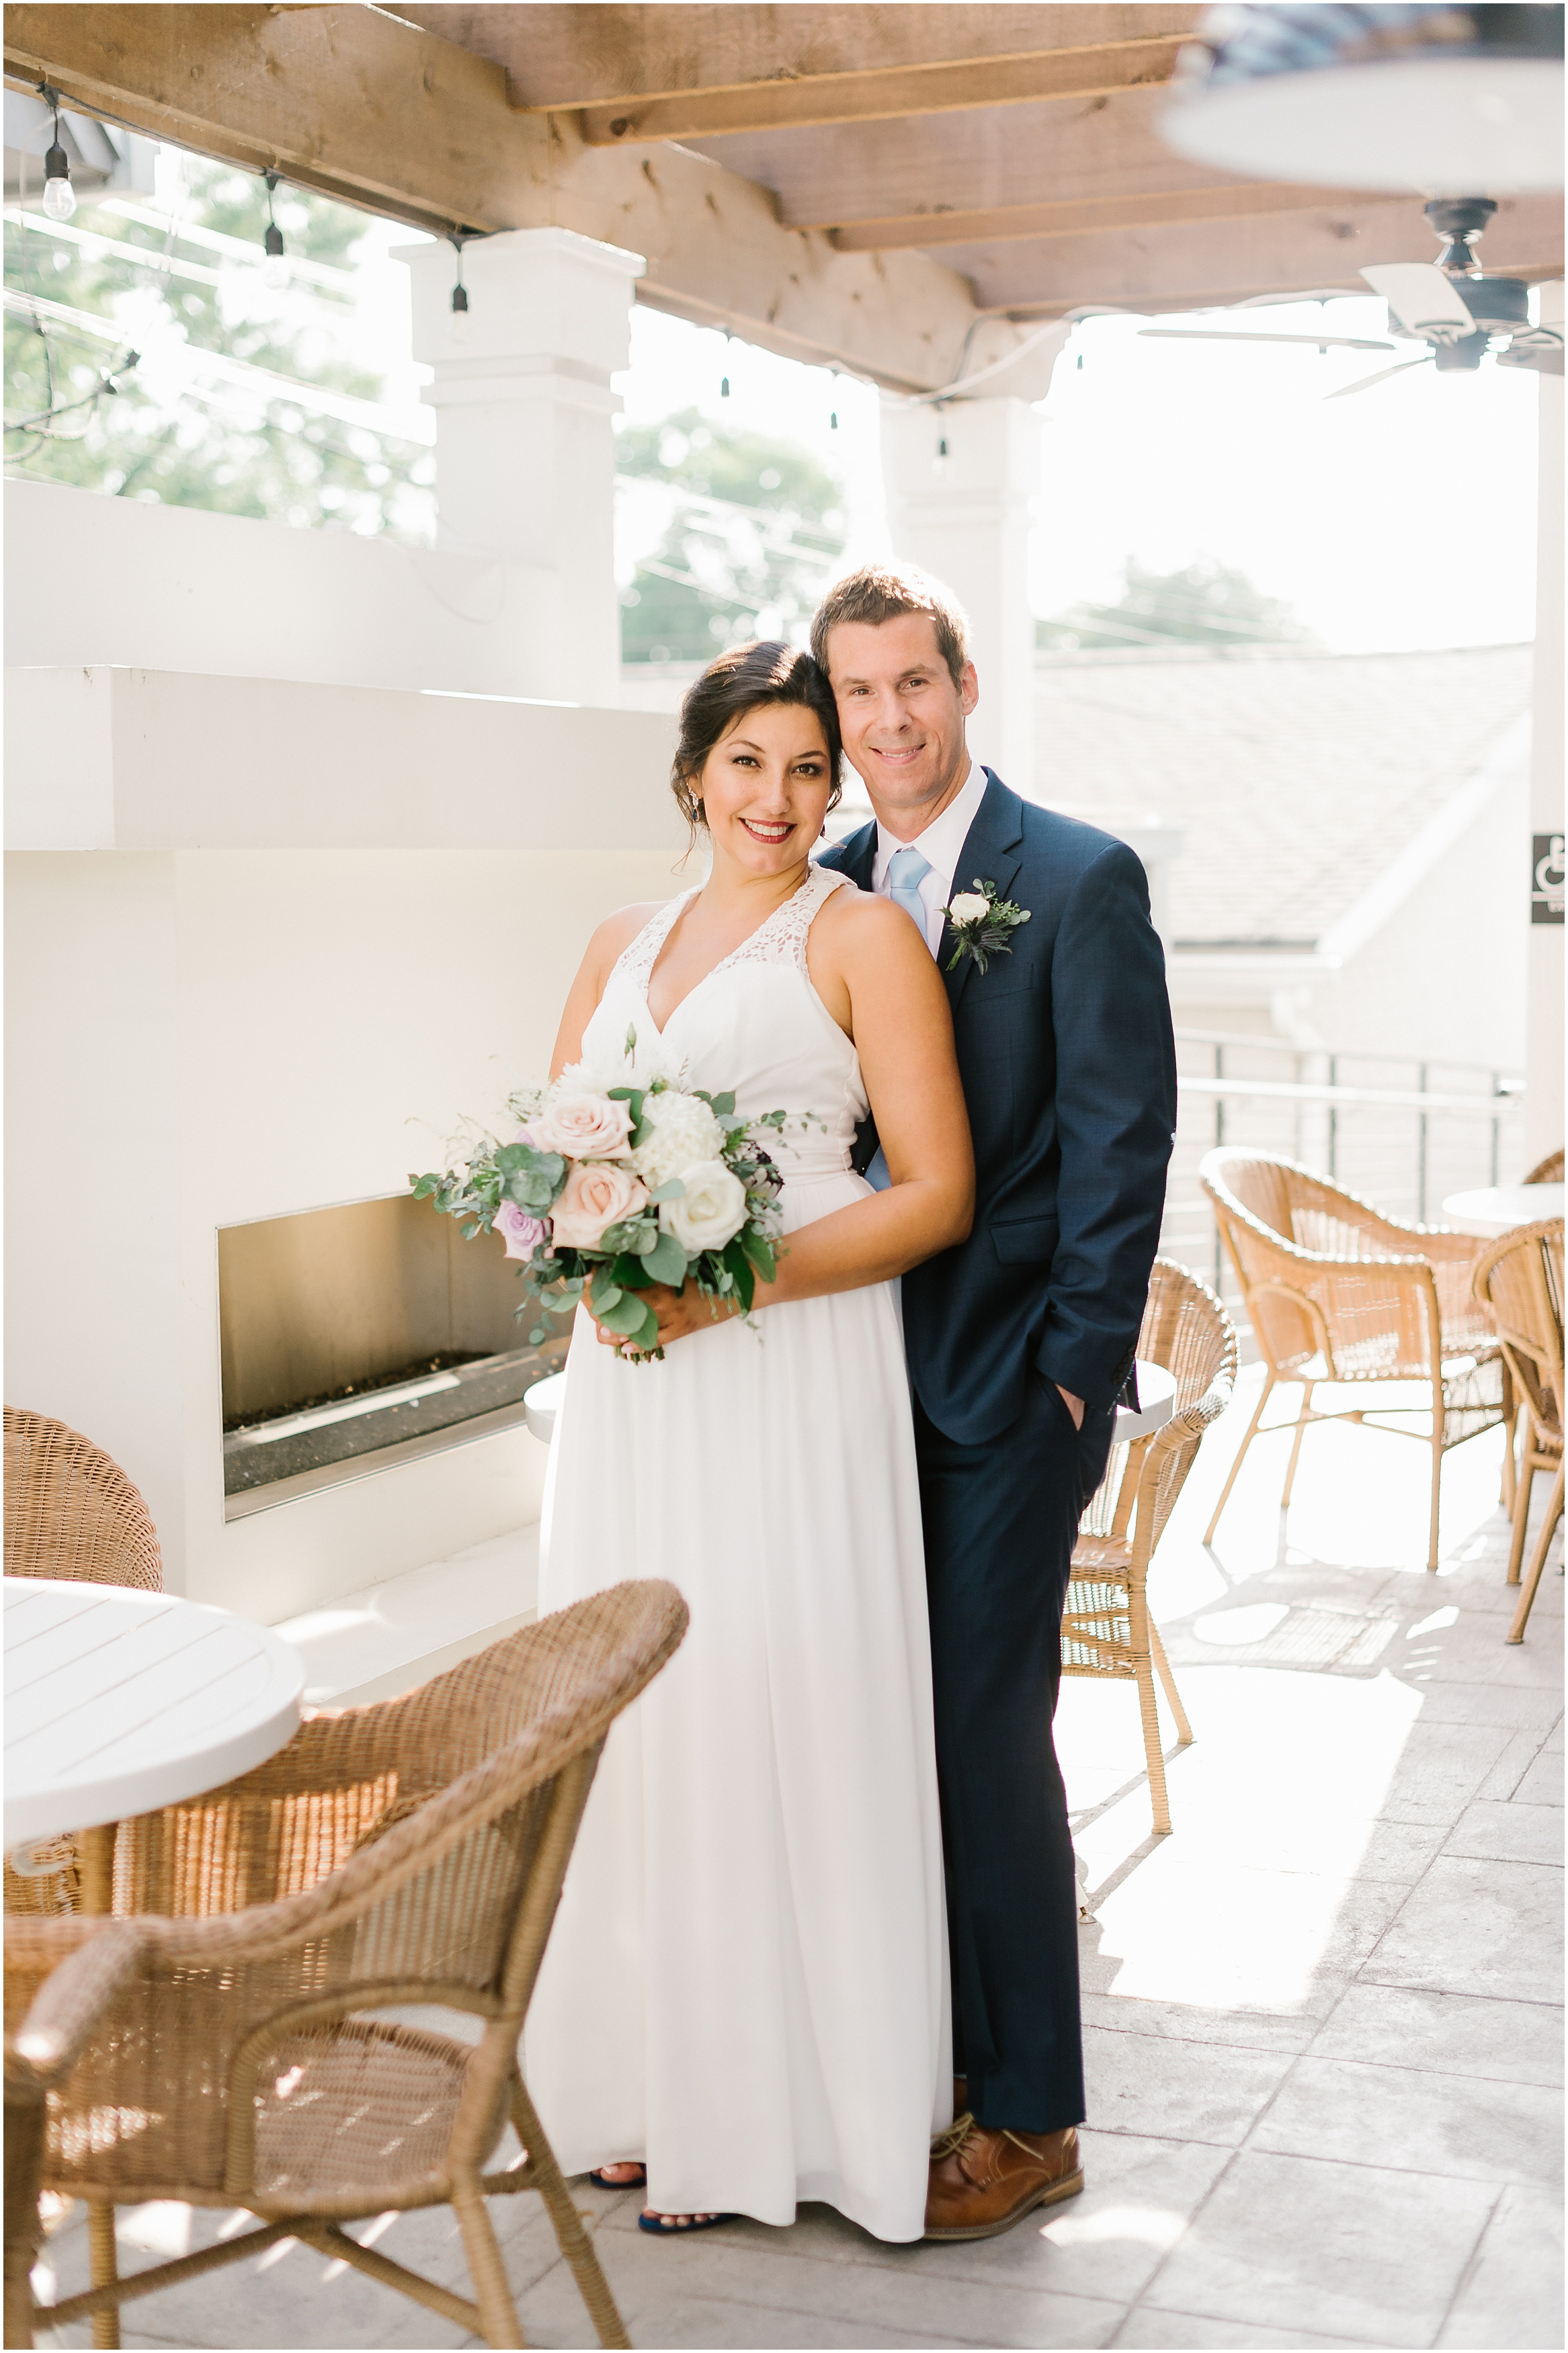 Rebecca Shehorn Photography Indianapolis Wedding Photographer Just Pop In Wedding_0649.jpg